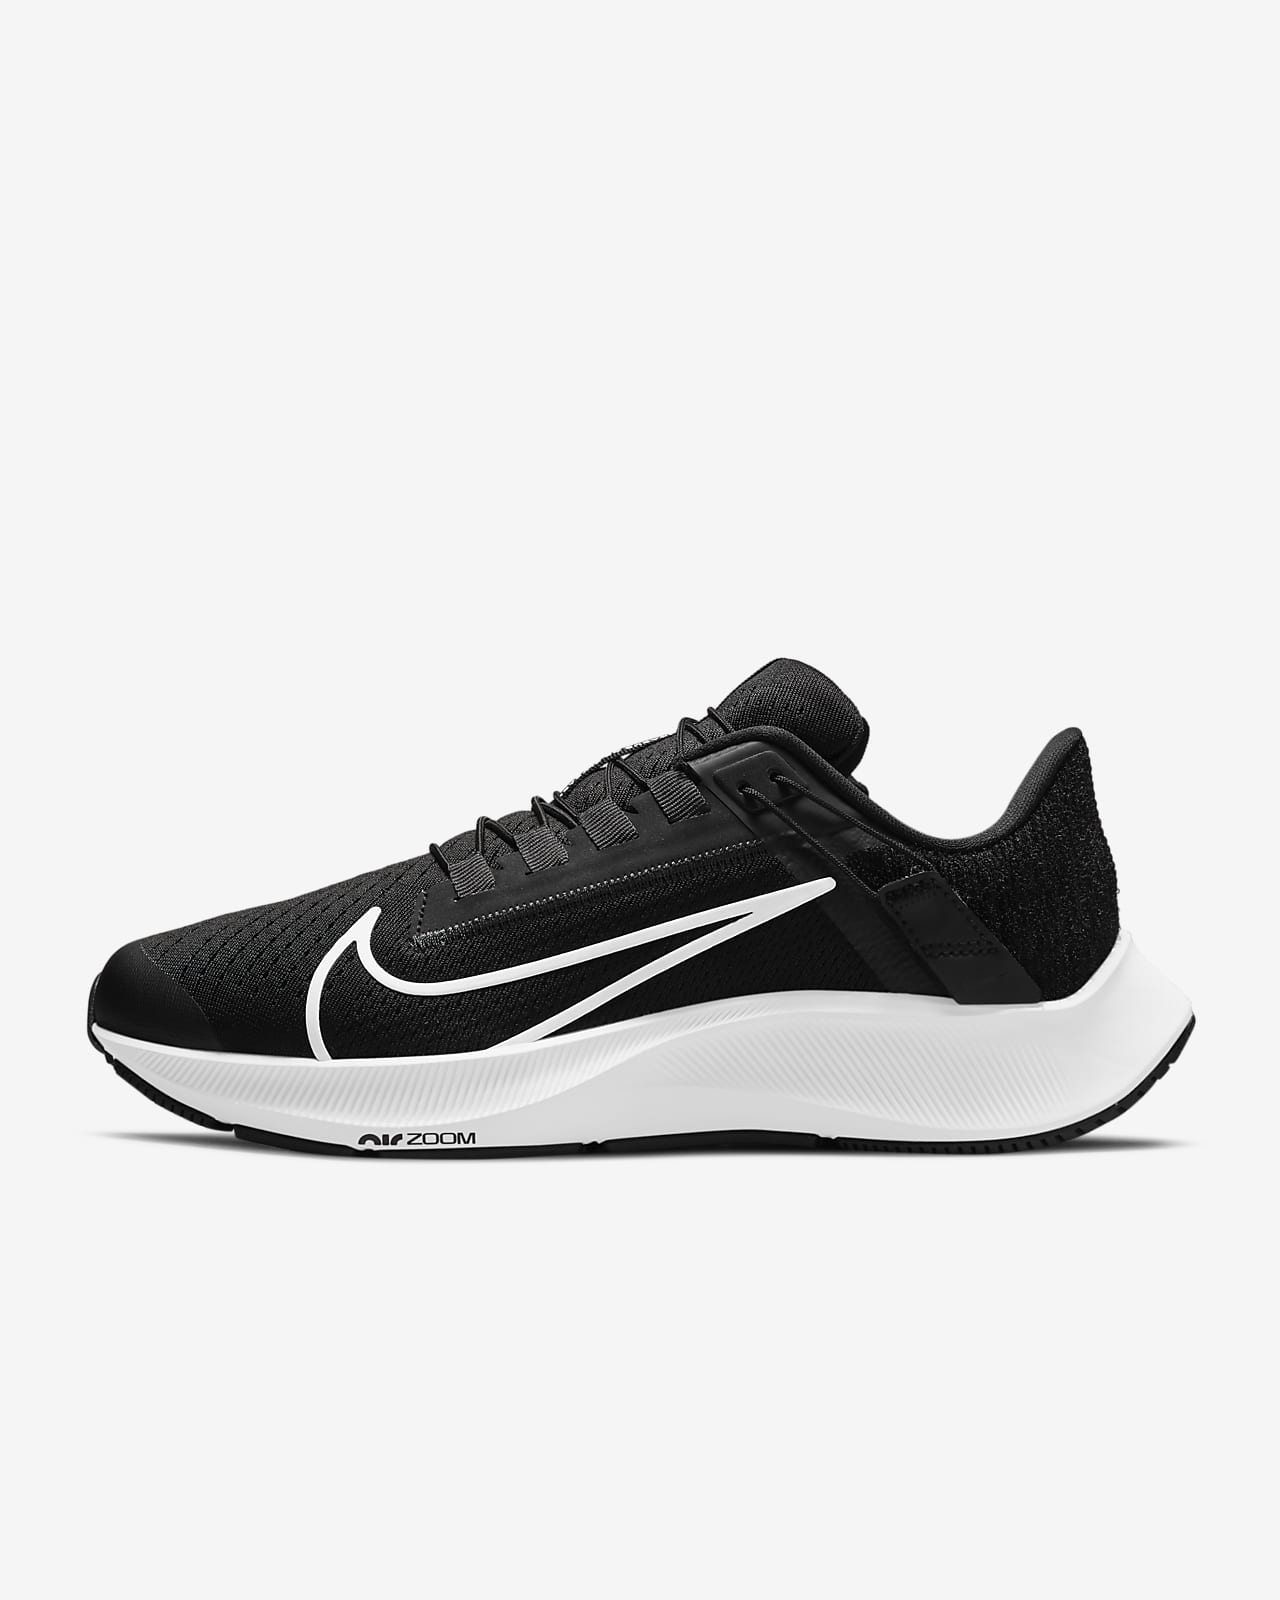 Nike Air Zoom Pegasus 38 FlyEase Women'S Easy On/Off Road Running Shoes